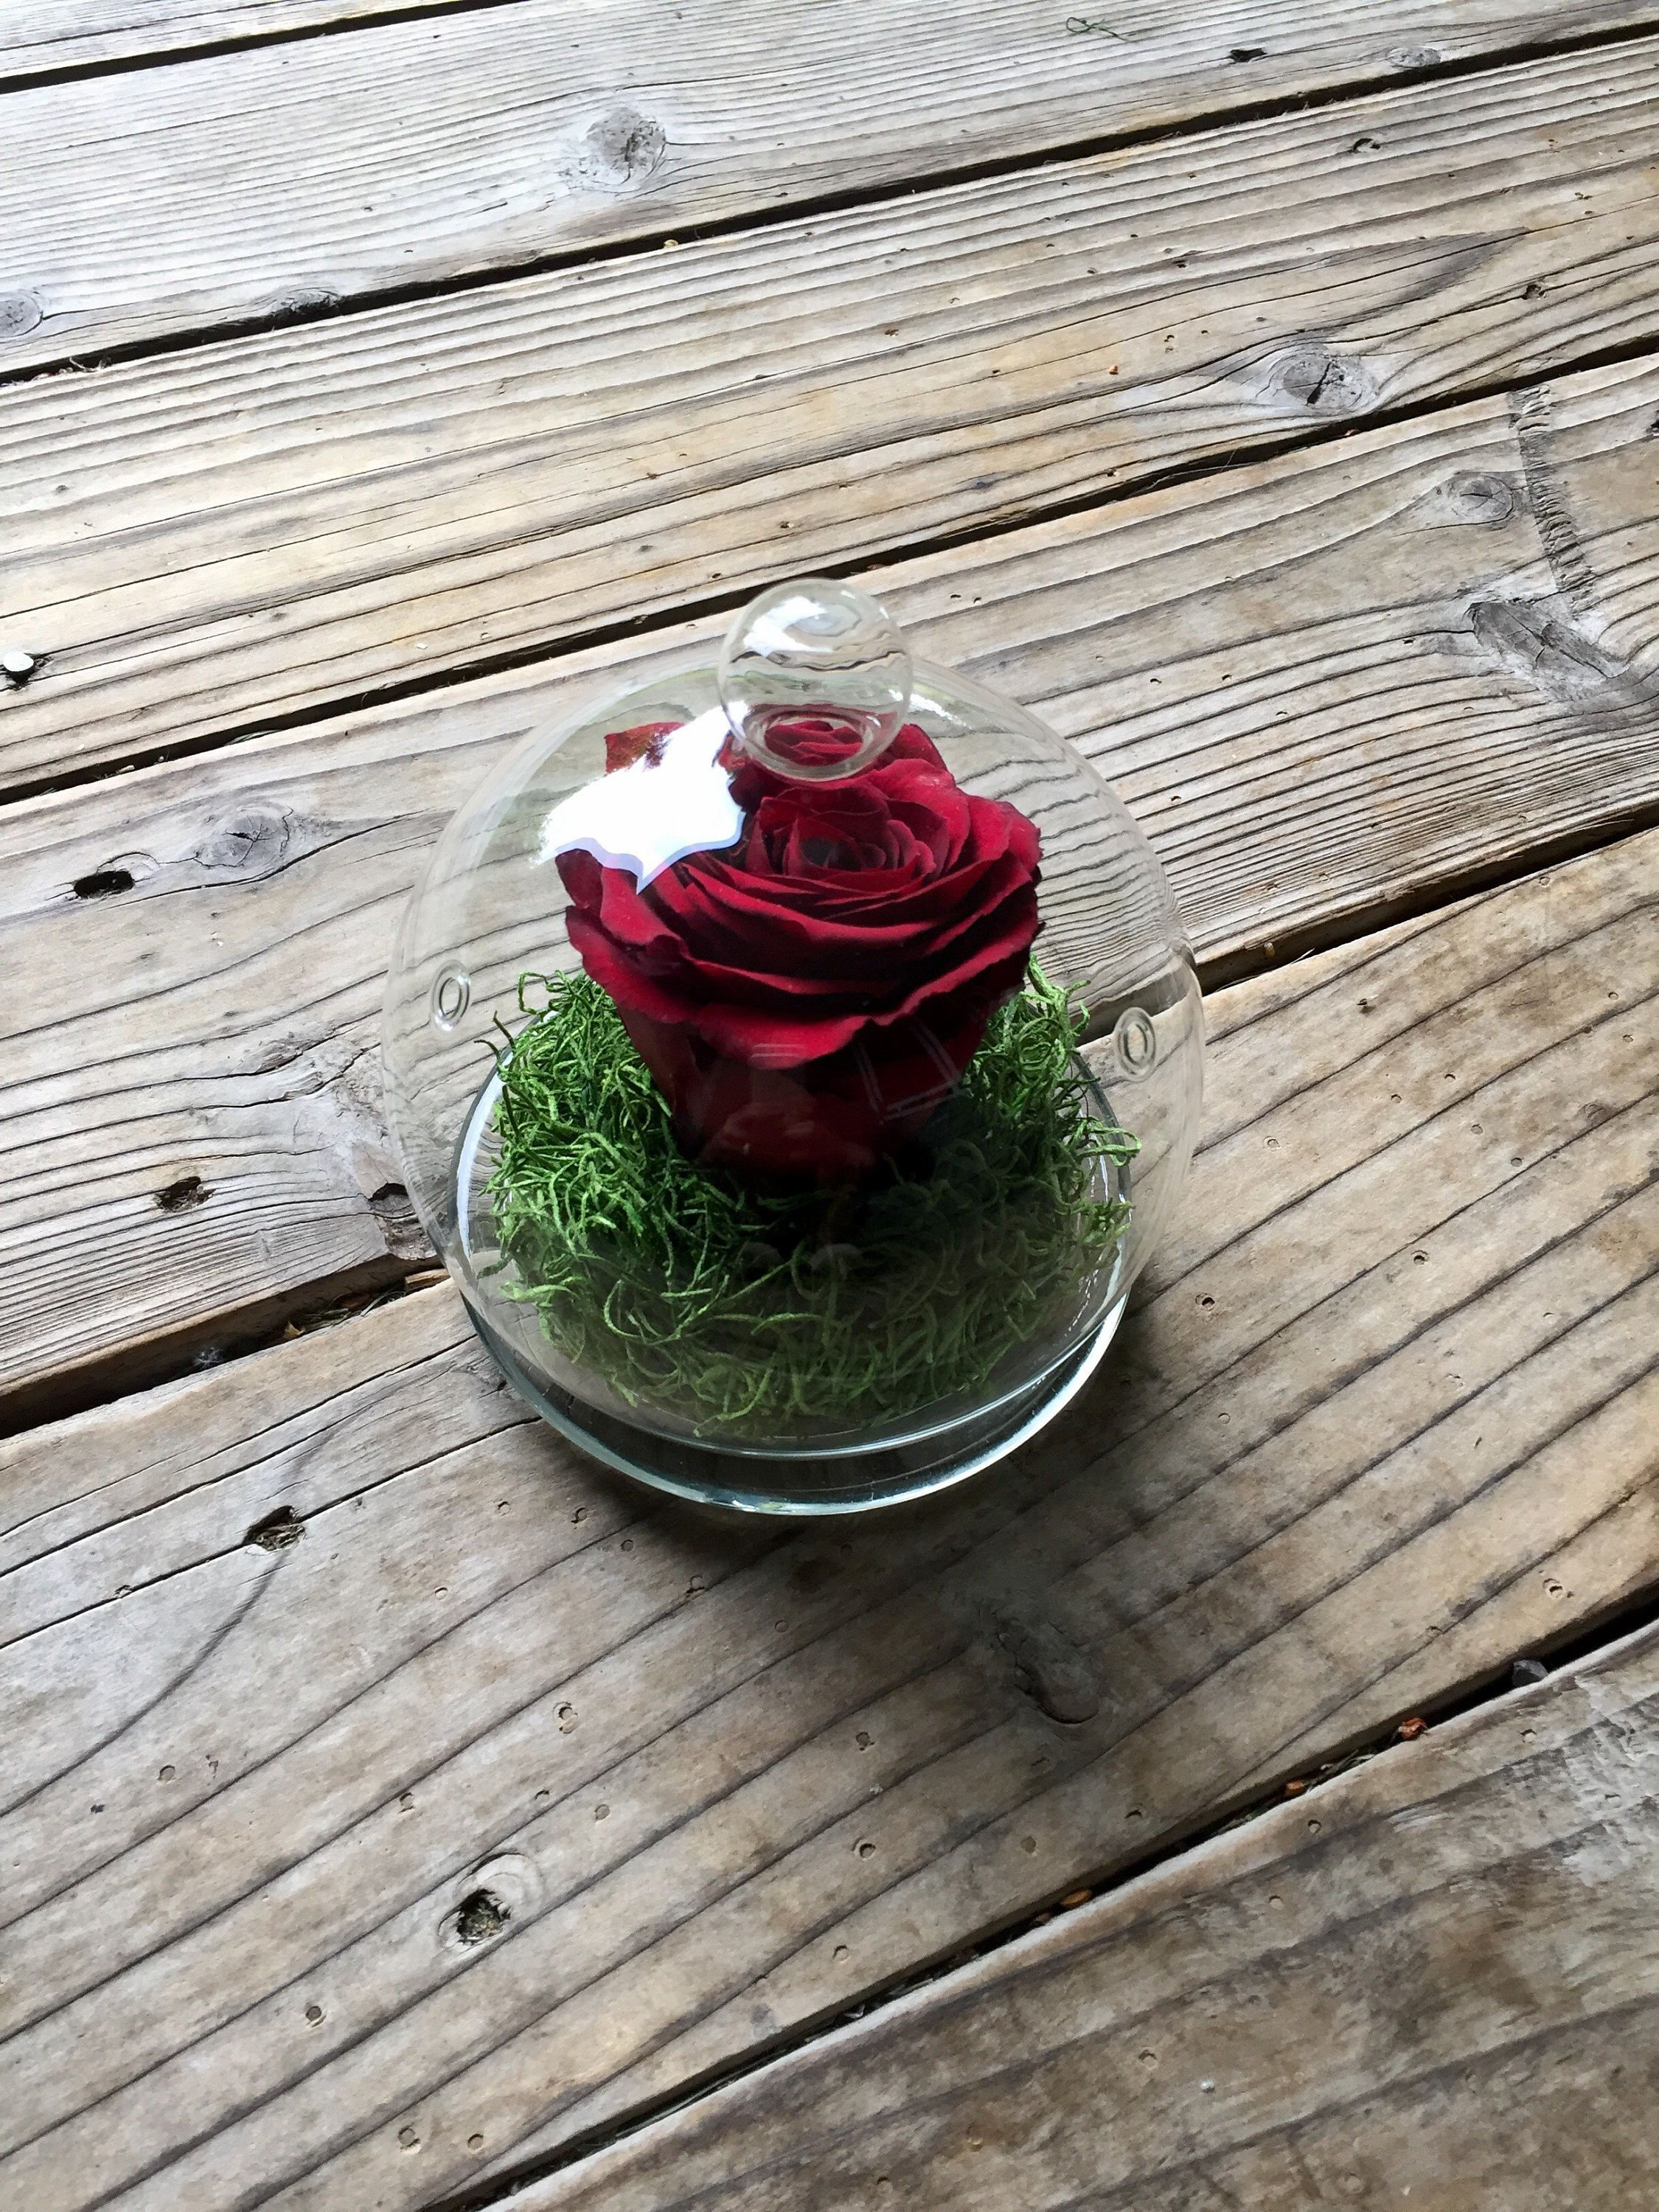 Preserved Rose In A Glass Cloche Preserved Roses Preserved Flowers Forever Roses Red Roses Single How To Preserve Flowers Preserved Roses Rose In A Glass,Joanna Gaines Shiplap Bedroom